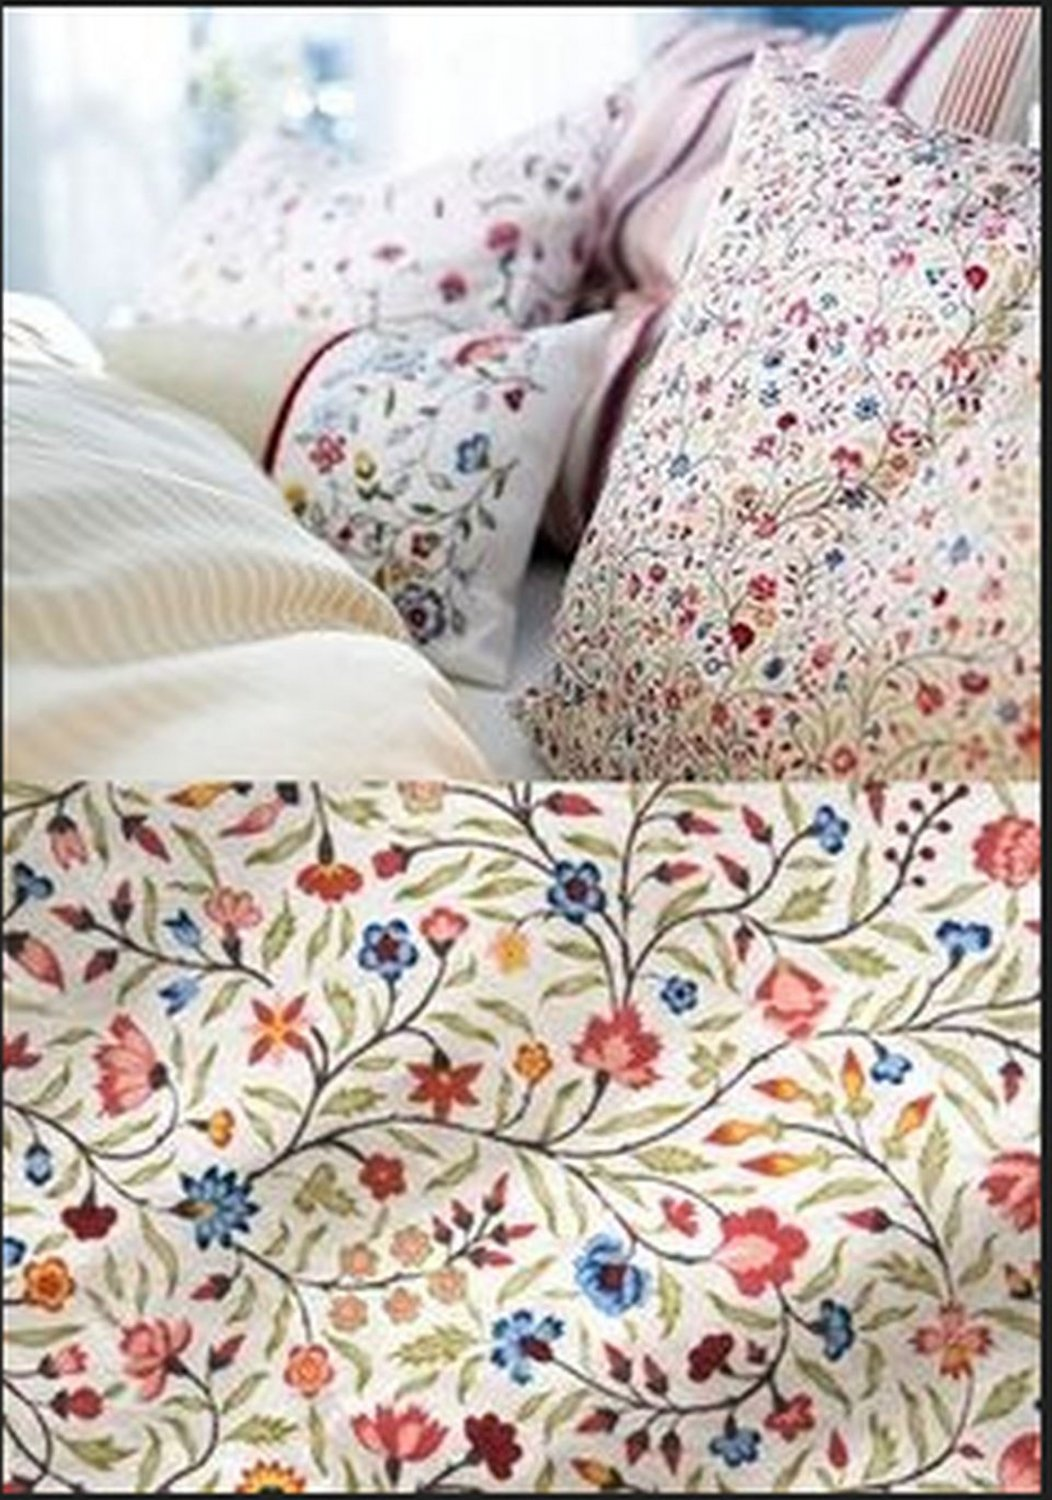 Ikea Alvine Ljuv Twin Duvet Cover Pillowcase Set Floral